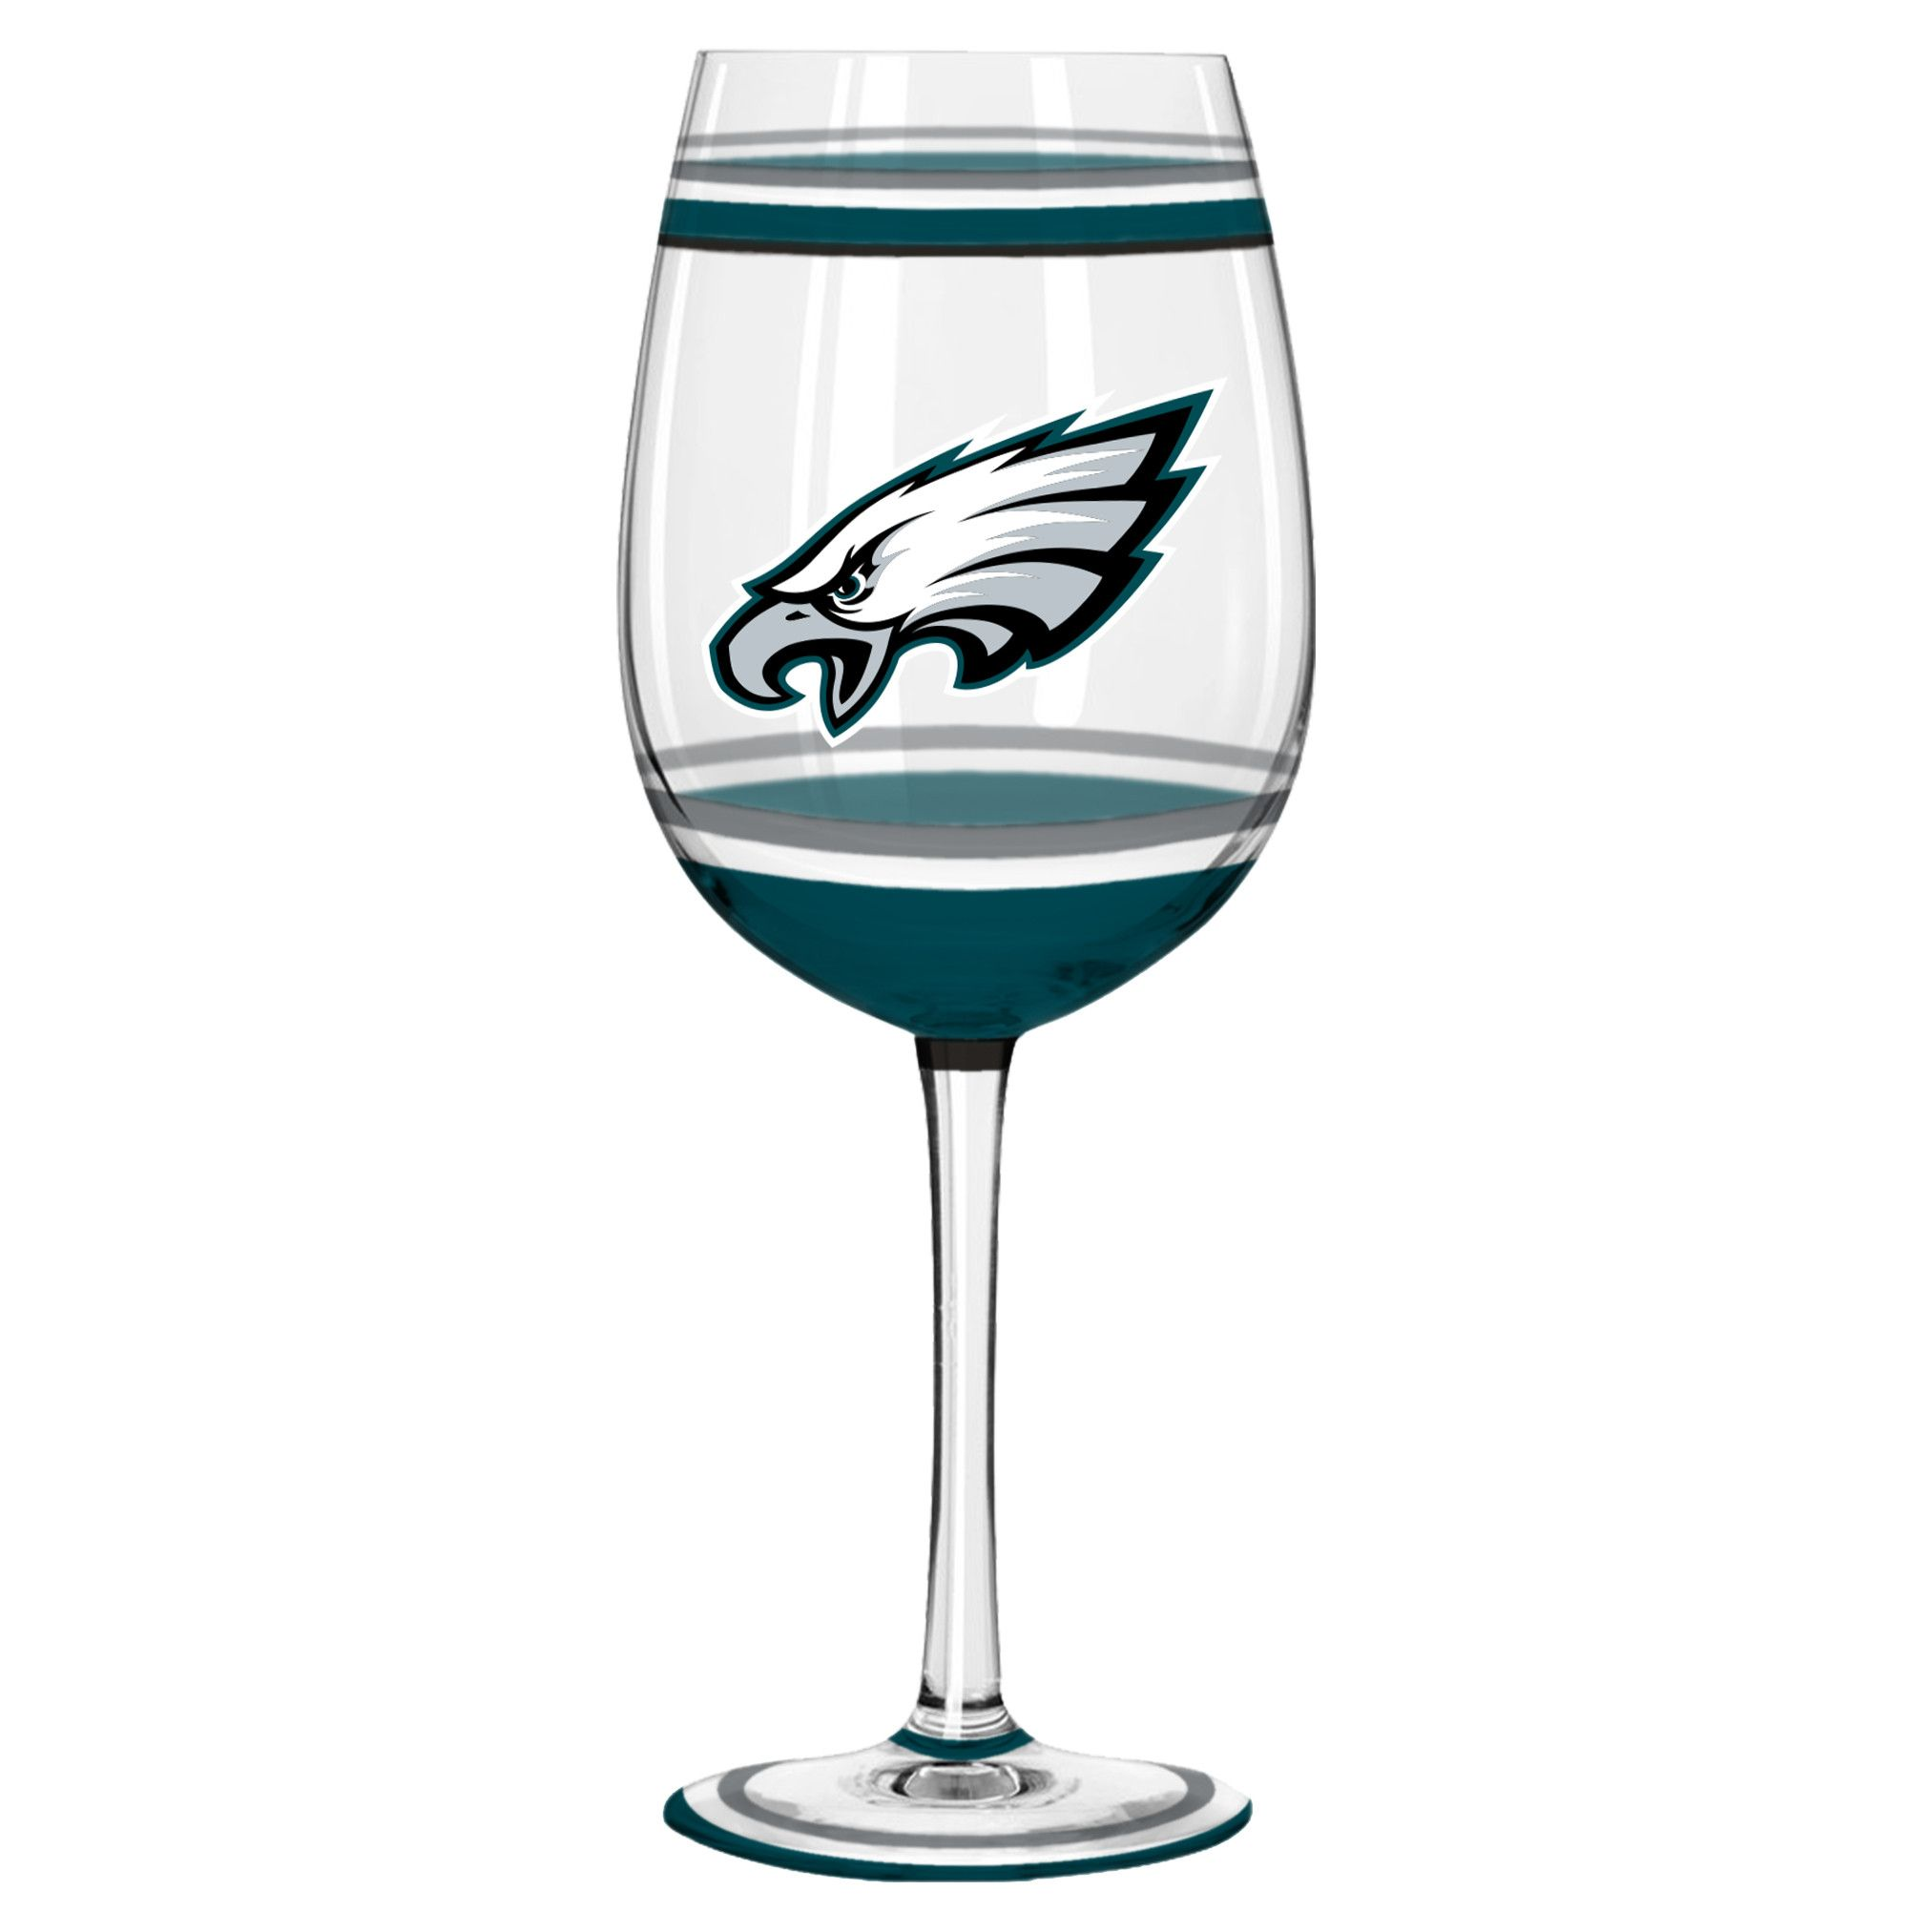 Philadelphia Eagles Wine Glass  18Oz Brush Painted #Philadelphiaeagles